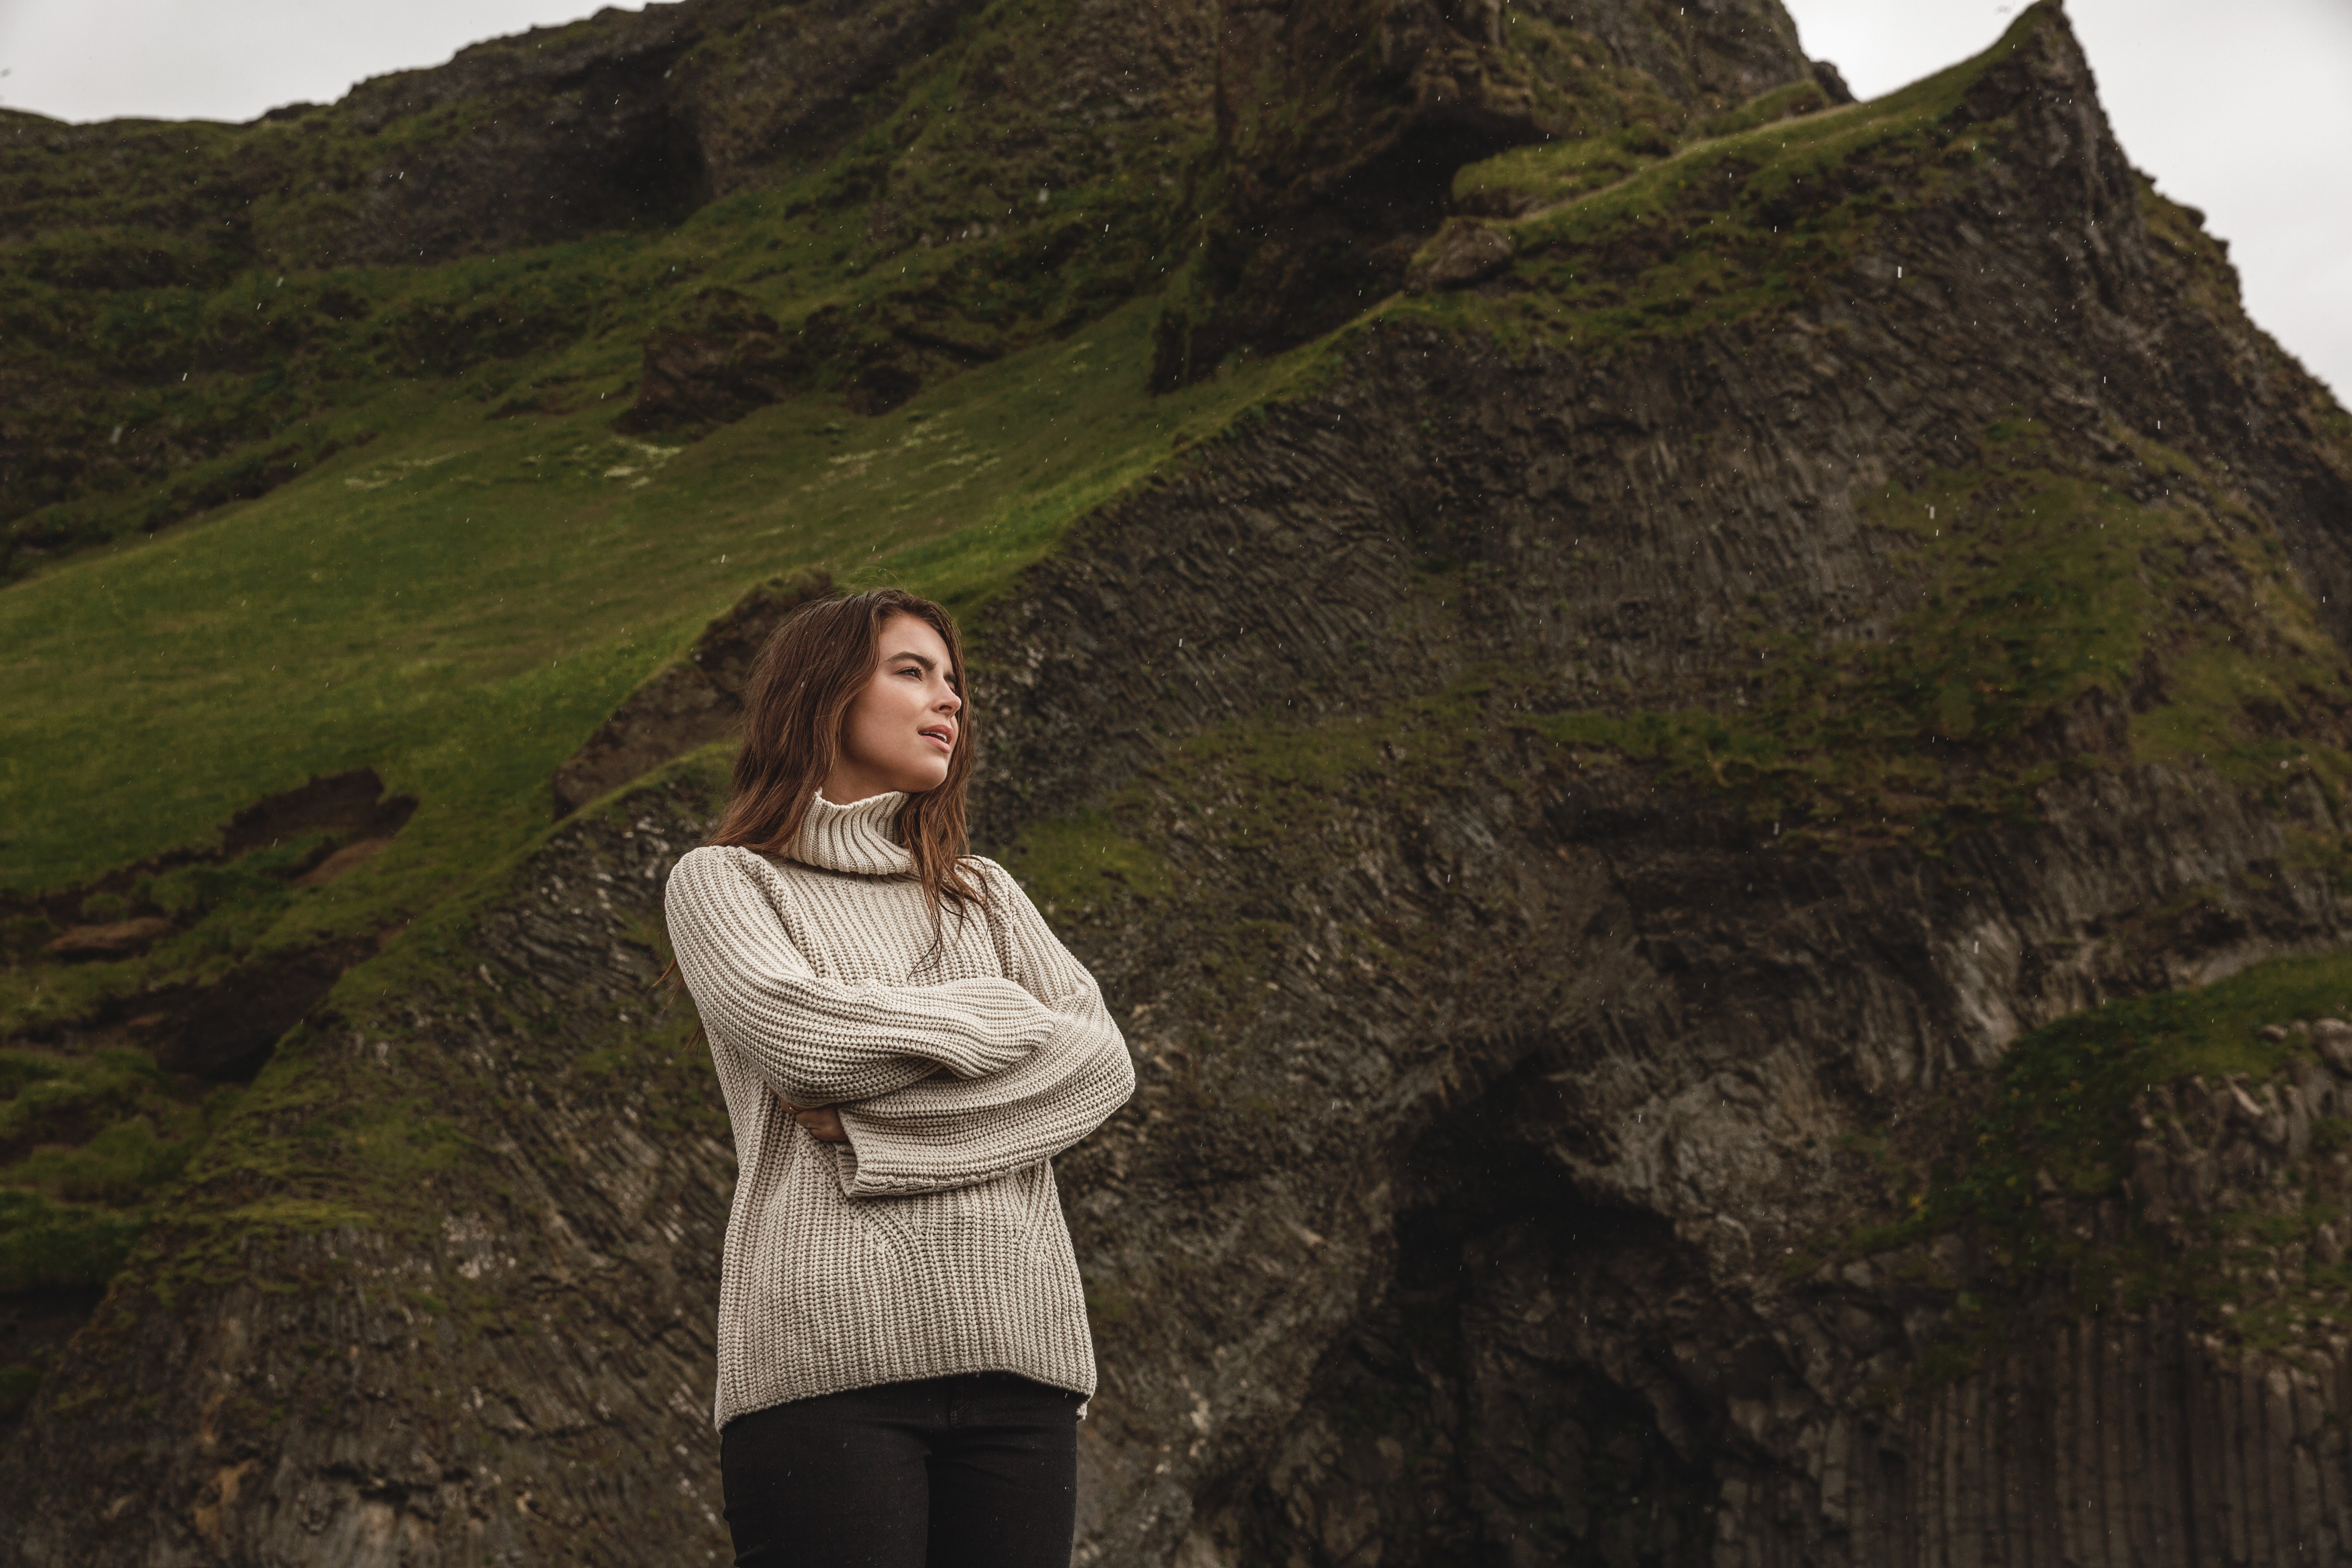 Katherine in Iceland wearing 525 America